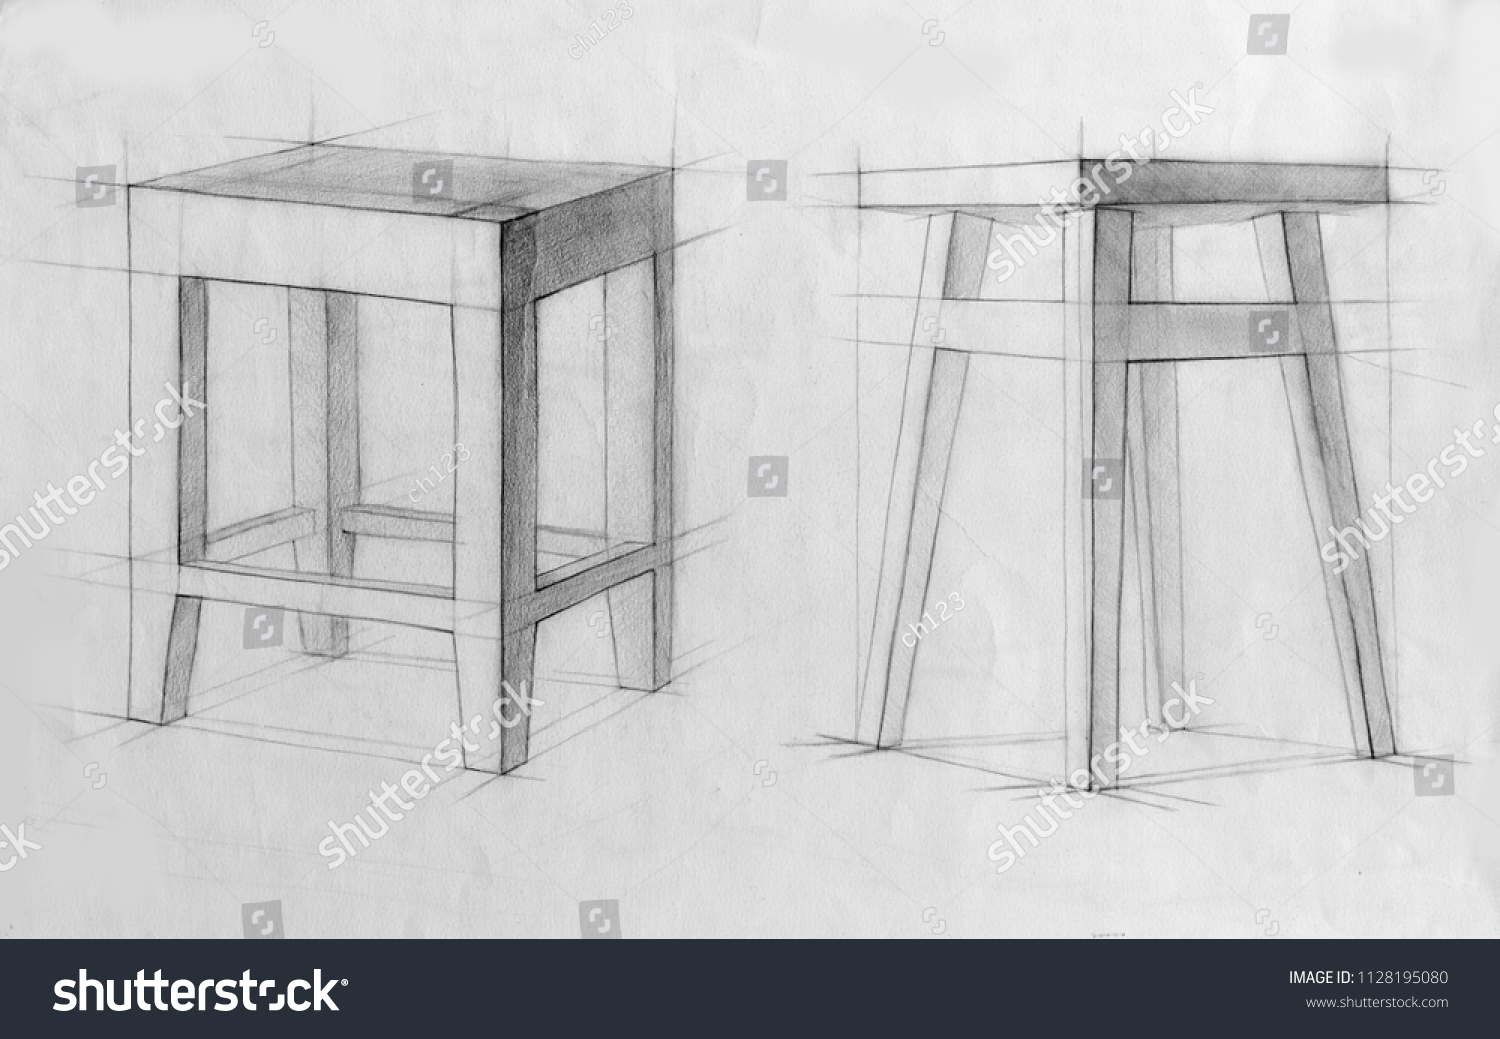 Still life pencil drawing sketch stock illustration 1128195080